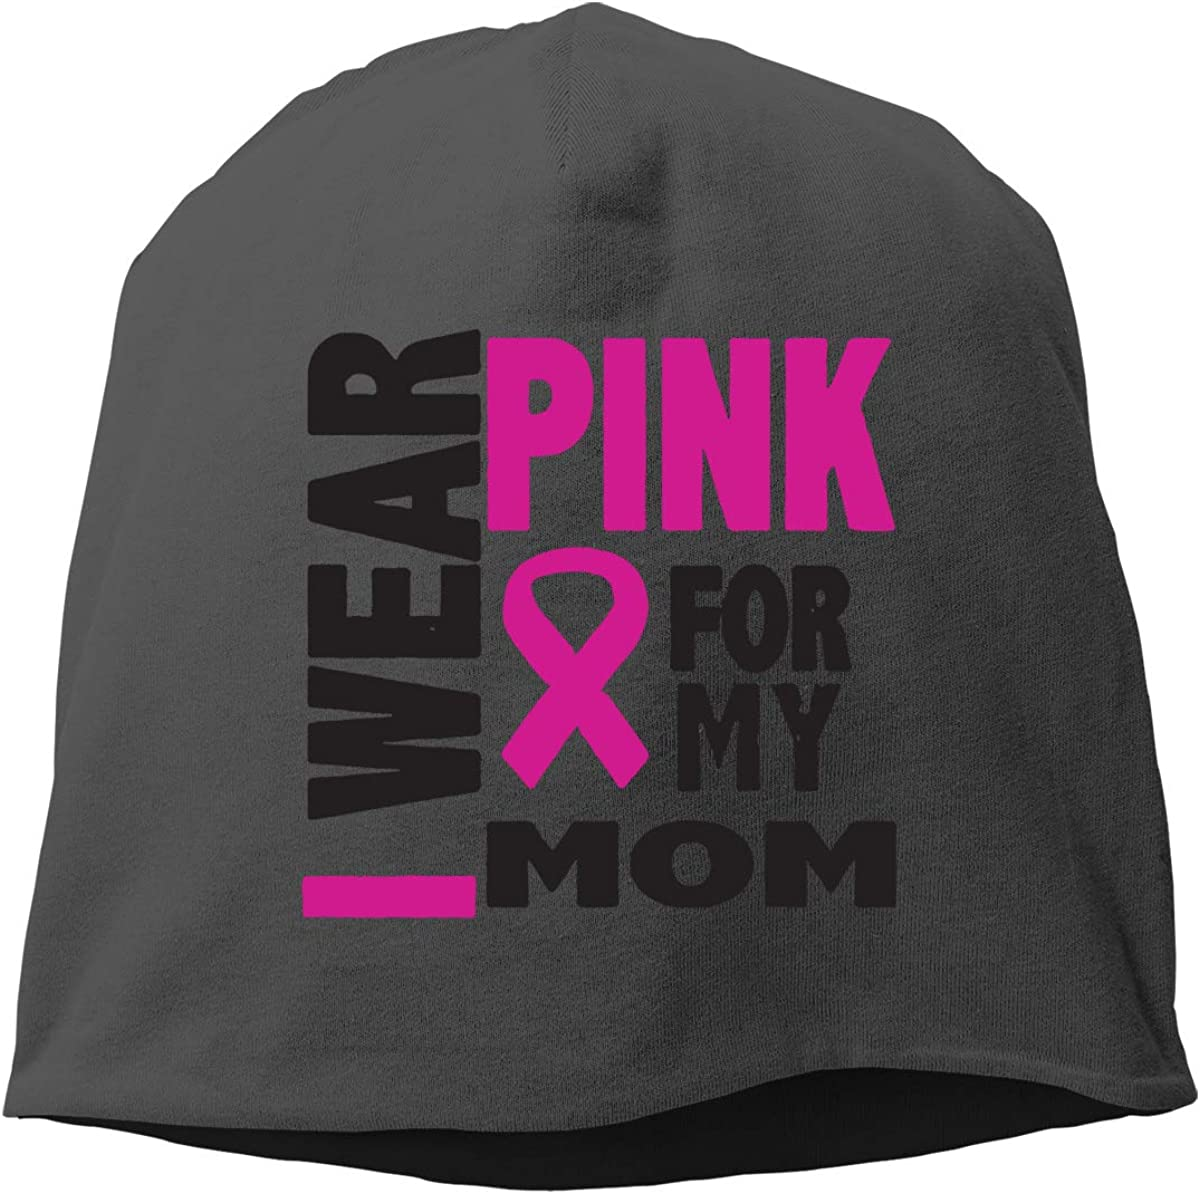 Breast Cancer Awareness Pink Ribbon for My Mom Skull Cap Helmet Liner Beanie Cap for Men Hip Hop Hedging Head Hat